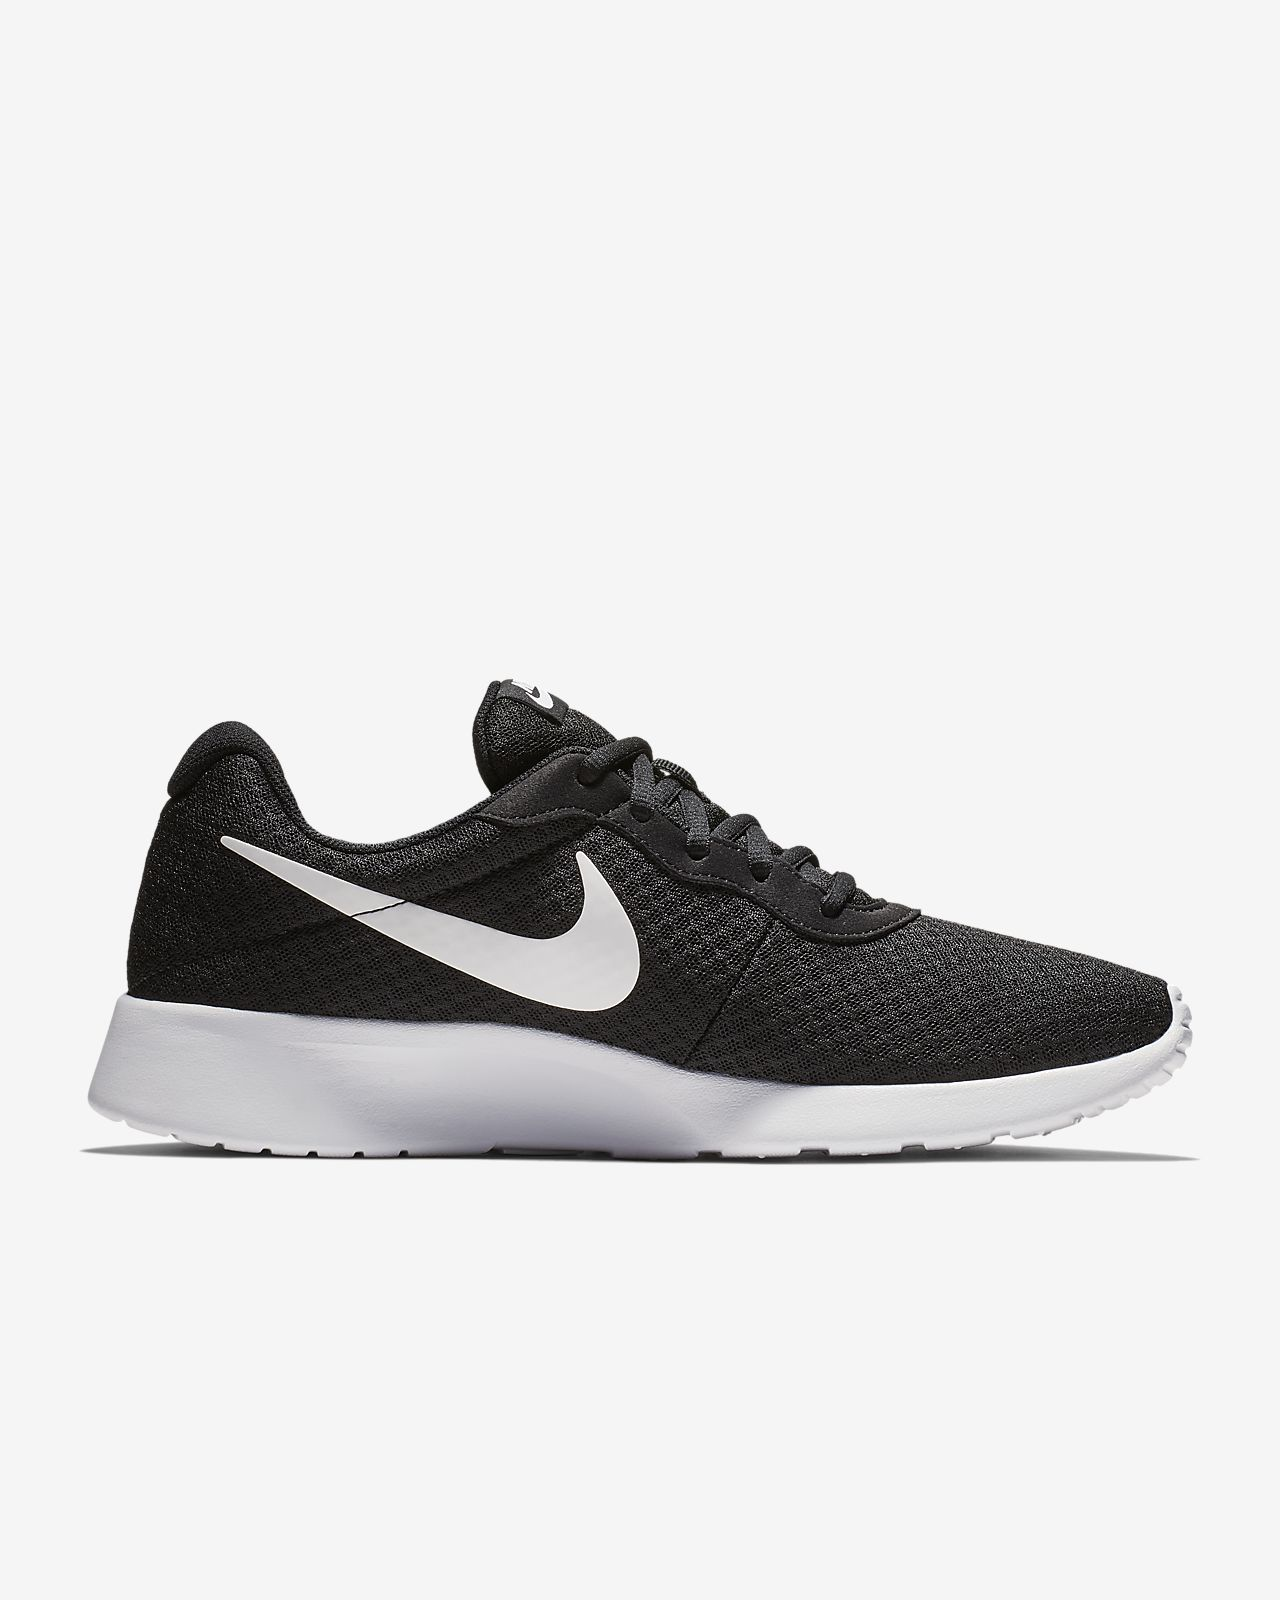 info for fc6d6 5348b Low Resolution Nike Tanjun Womens Shoe Nike Tanjun Womens Shoe